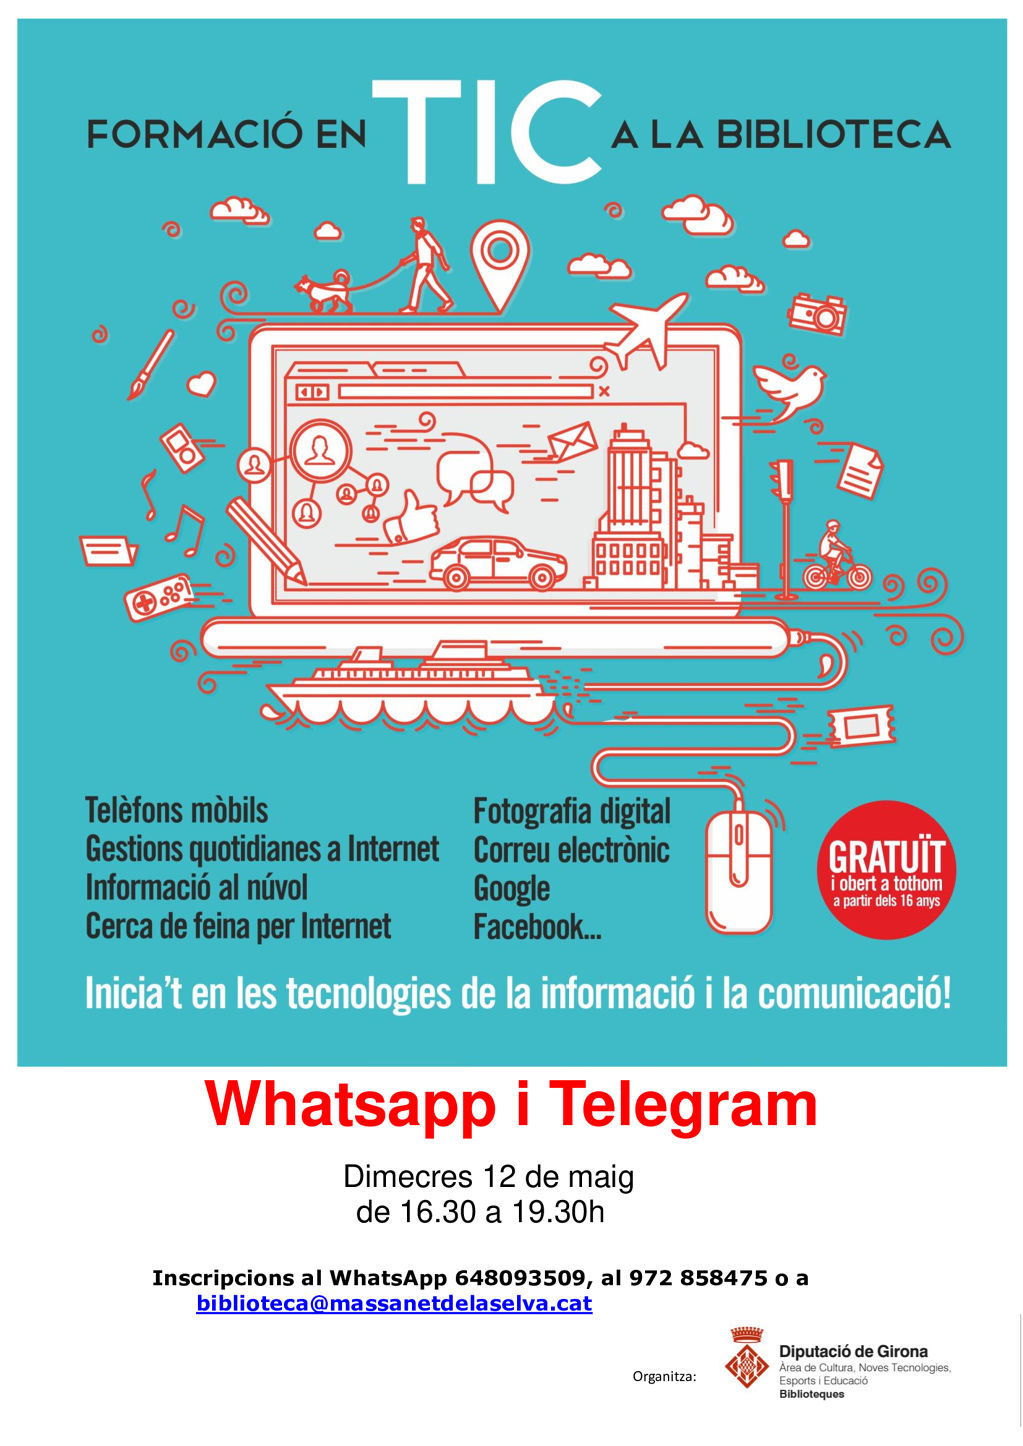 CURS TIC: WhatsApp i Telegram - 8ac16-WhatsApp-i-Telegram--1-.jpg